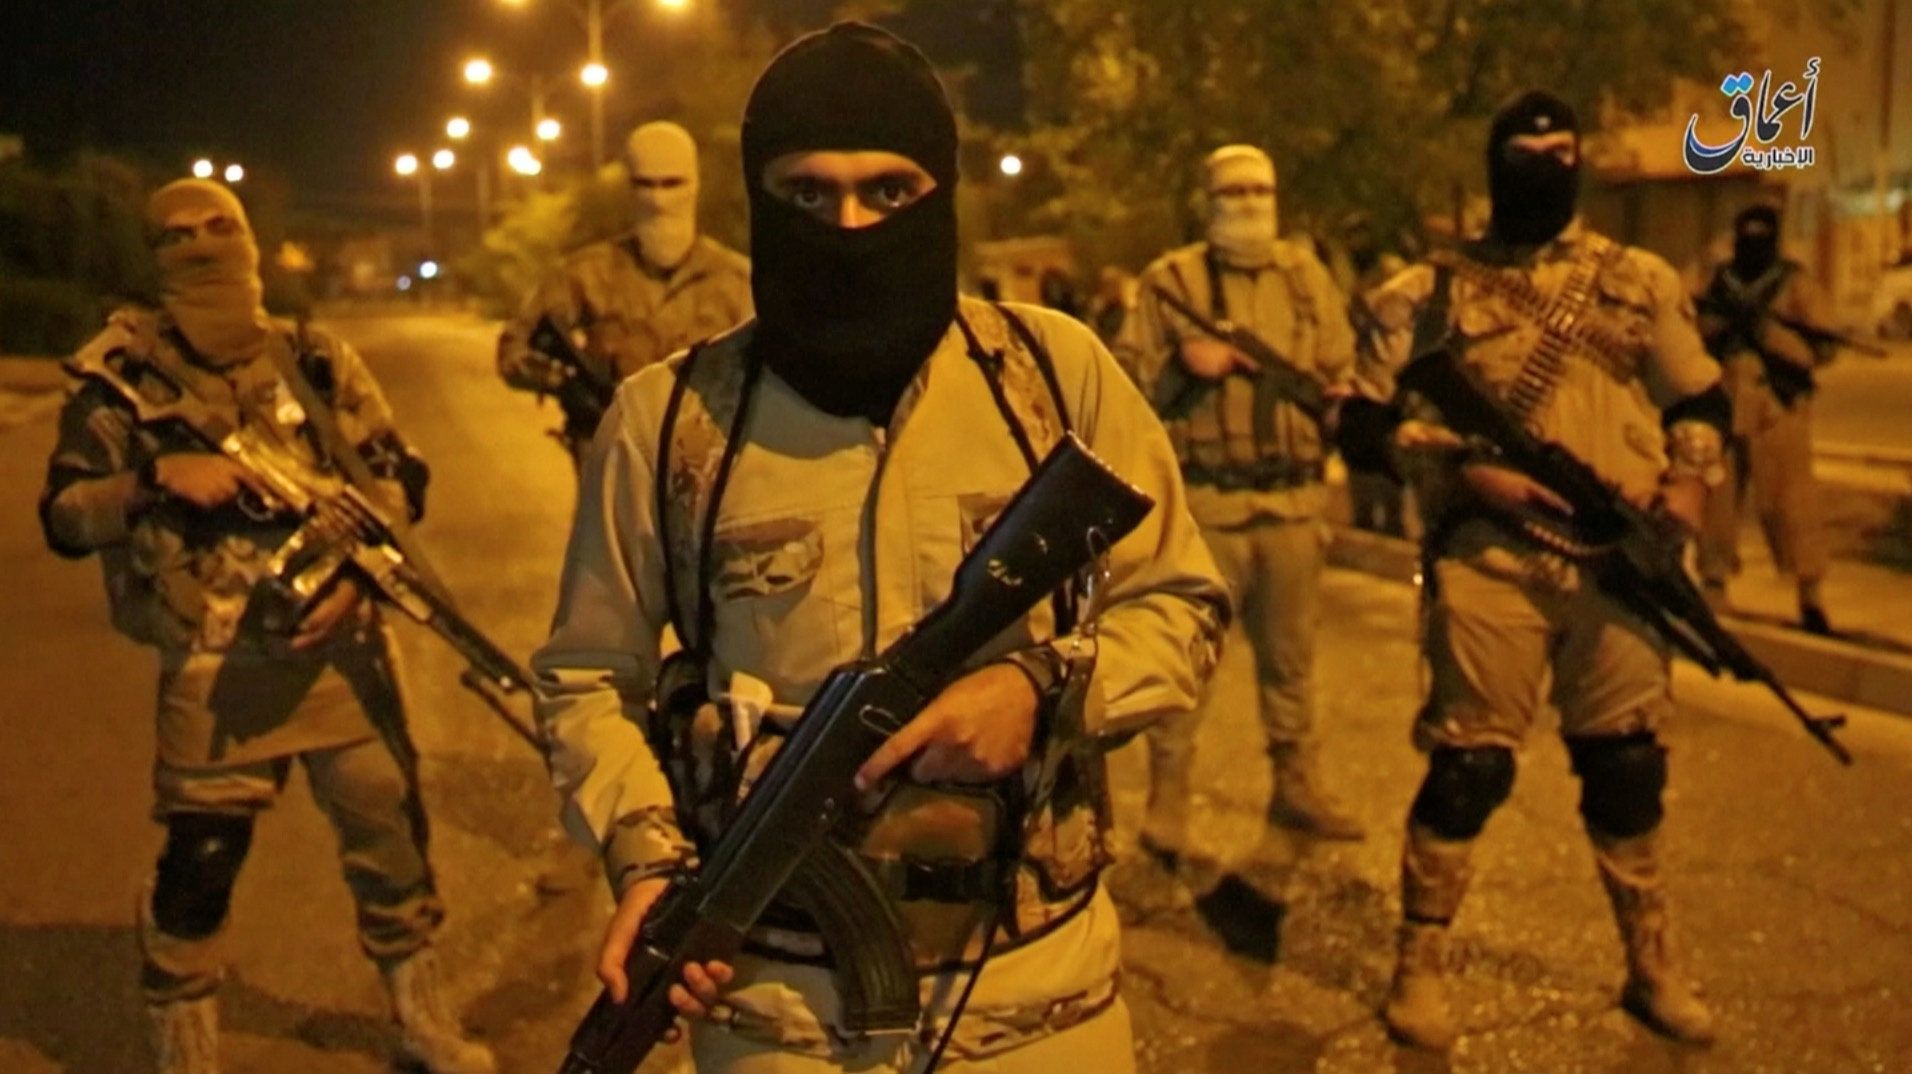 Isis Propaganda Websites Shut Down In Attempt To Curb Terror Group's Online